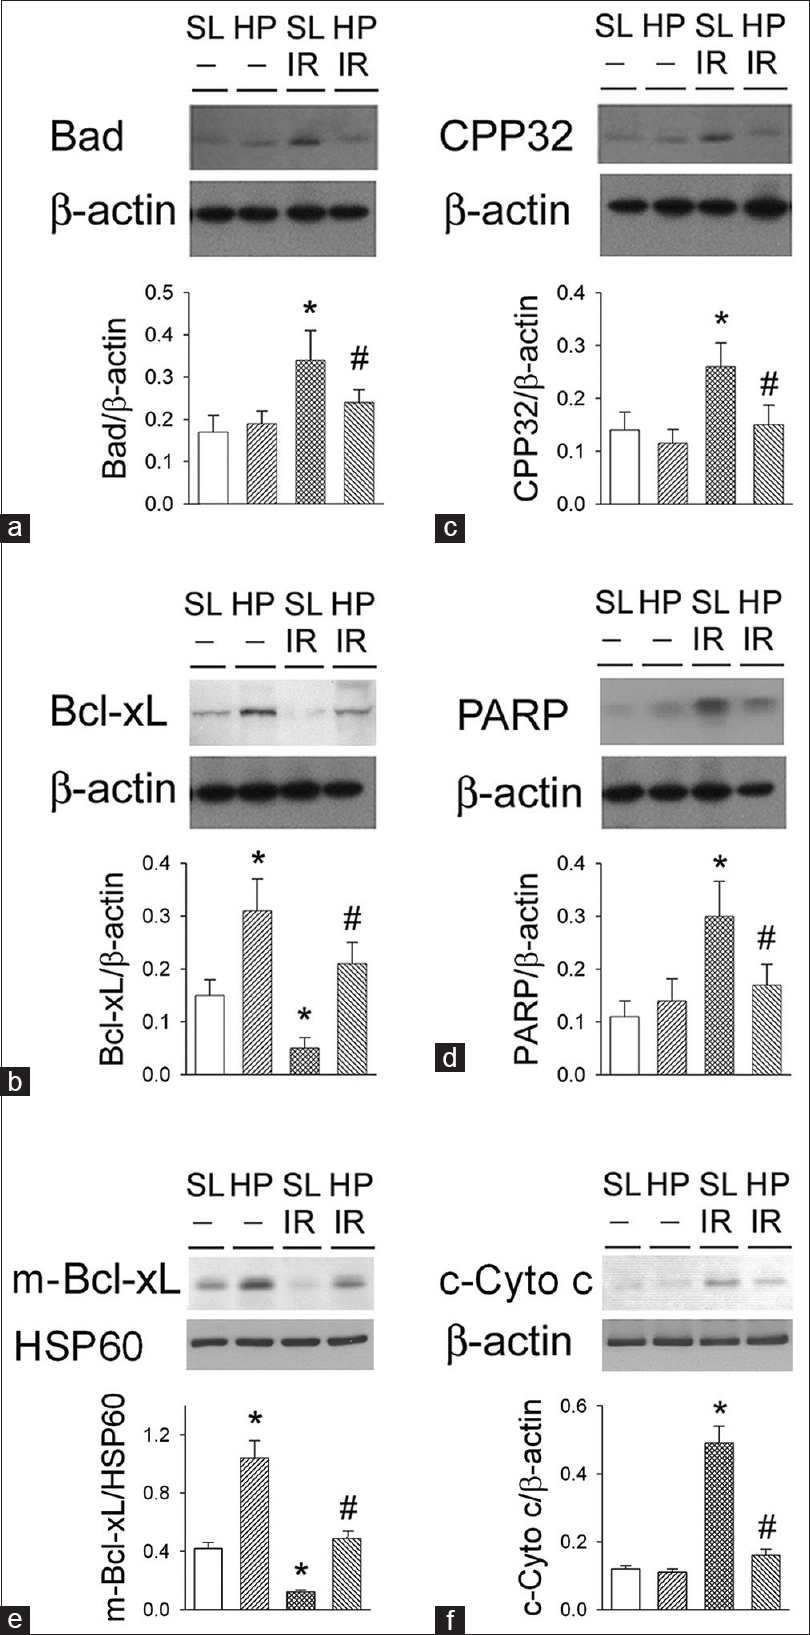 Figure 5: Effect of hypoxic preconditioning on ischemia/reperfusion-induced apoptosis-related proteins: Bad (a), Bcl-xL (b), CPP32 (c), and poly-(ADP-ribose)-polymerase (d) expression in the rat livers. The expression of mitochondrial Bcl-xL (m-Bcl-xL) and mitochondria control protein HSP60 (e). Cytosolic cytochrome C (c-Cyto c) expression (f). HP, hypoxic preconditioning; SL, control; I/R, ischemia/ reperfusion. *<i>P</i> < 0.05 when compared to sea level control. #<i>P</i> < 0.05 HPIR versus SLIR group